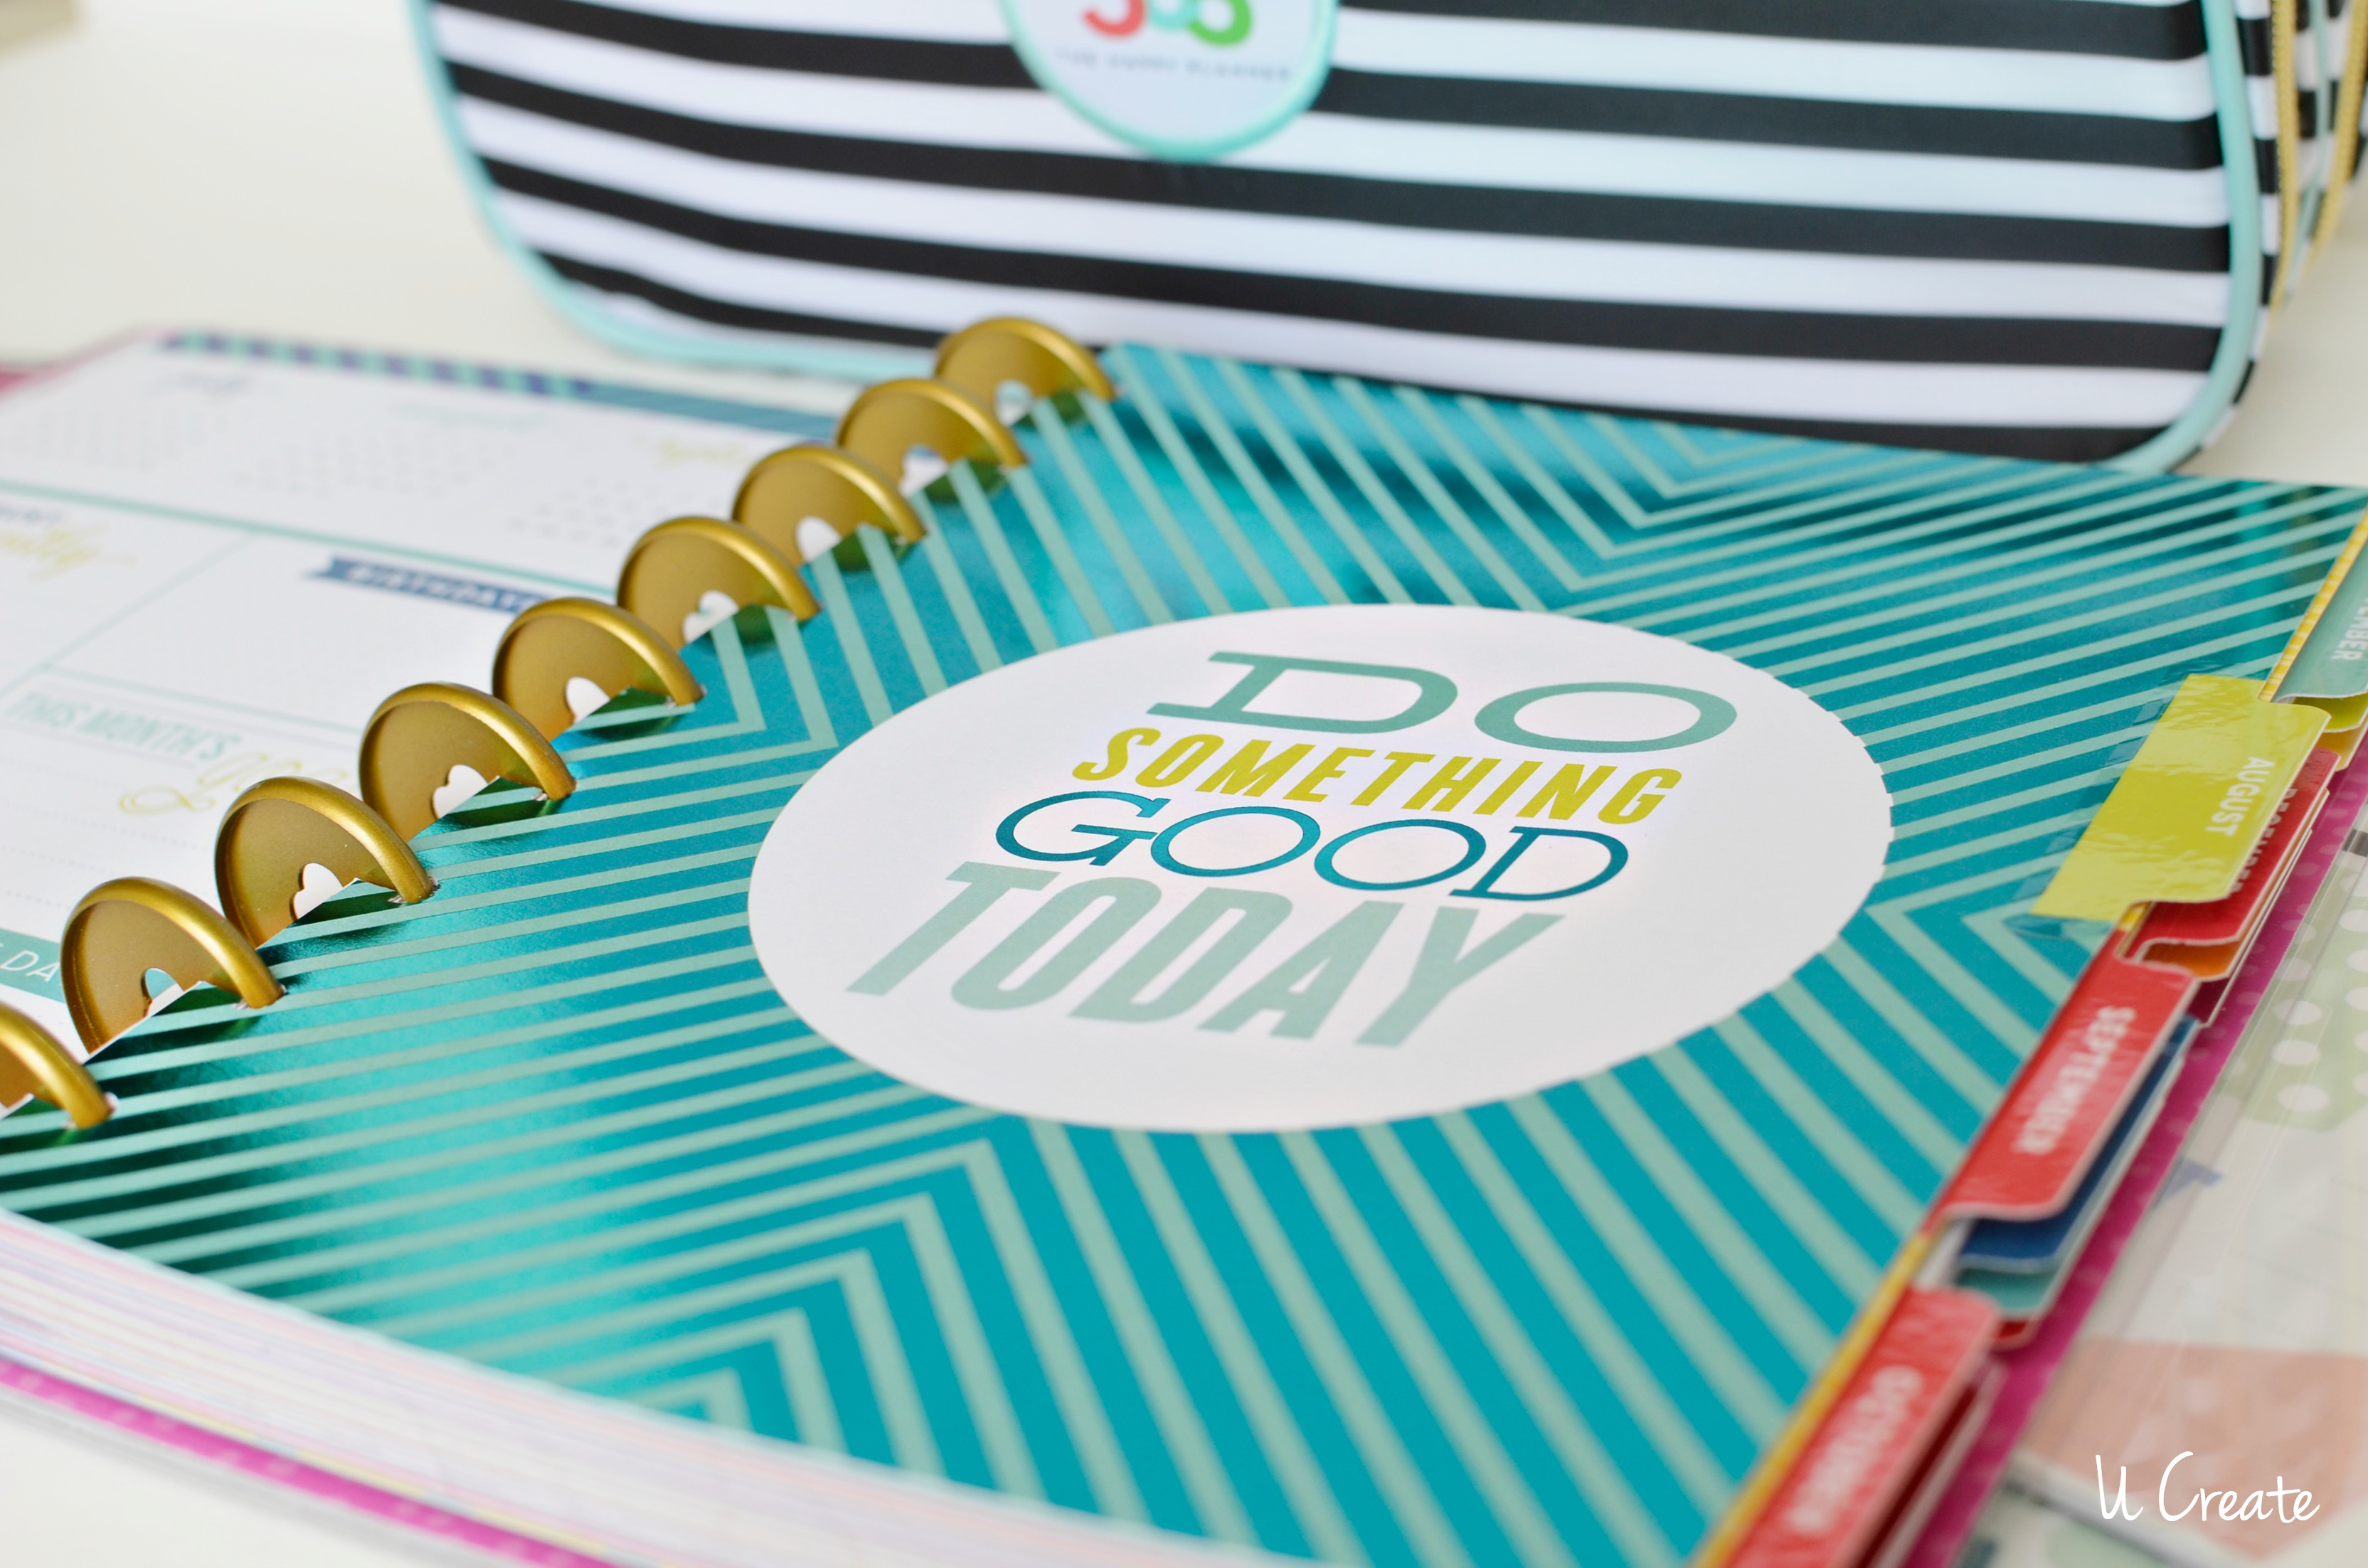 Craft Trend: Planners (why they are so hot)!